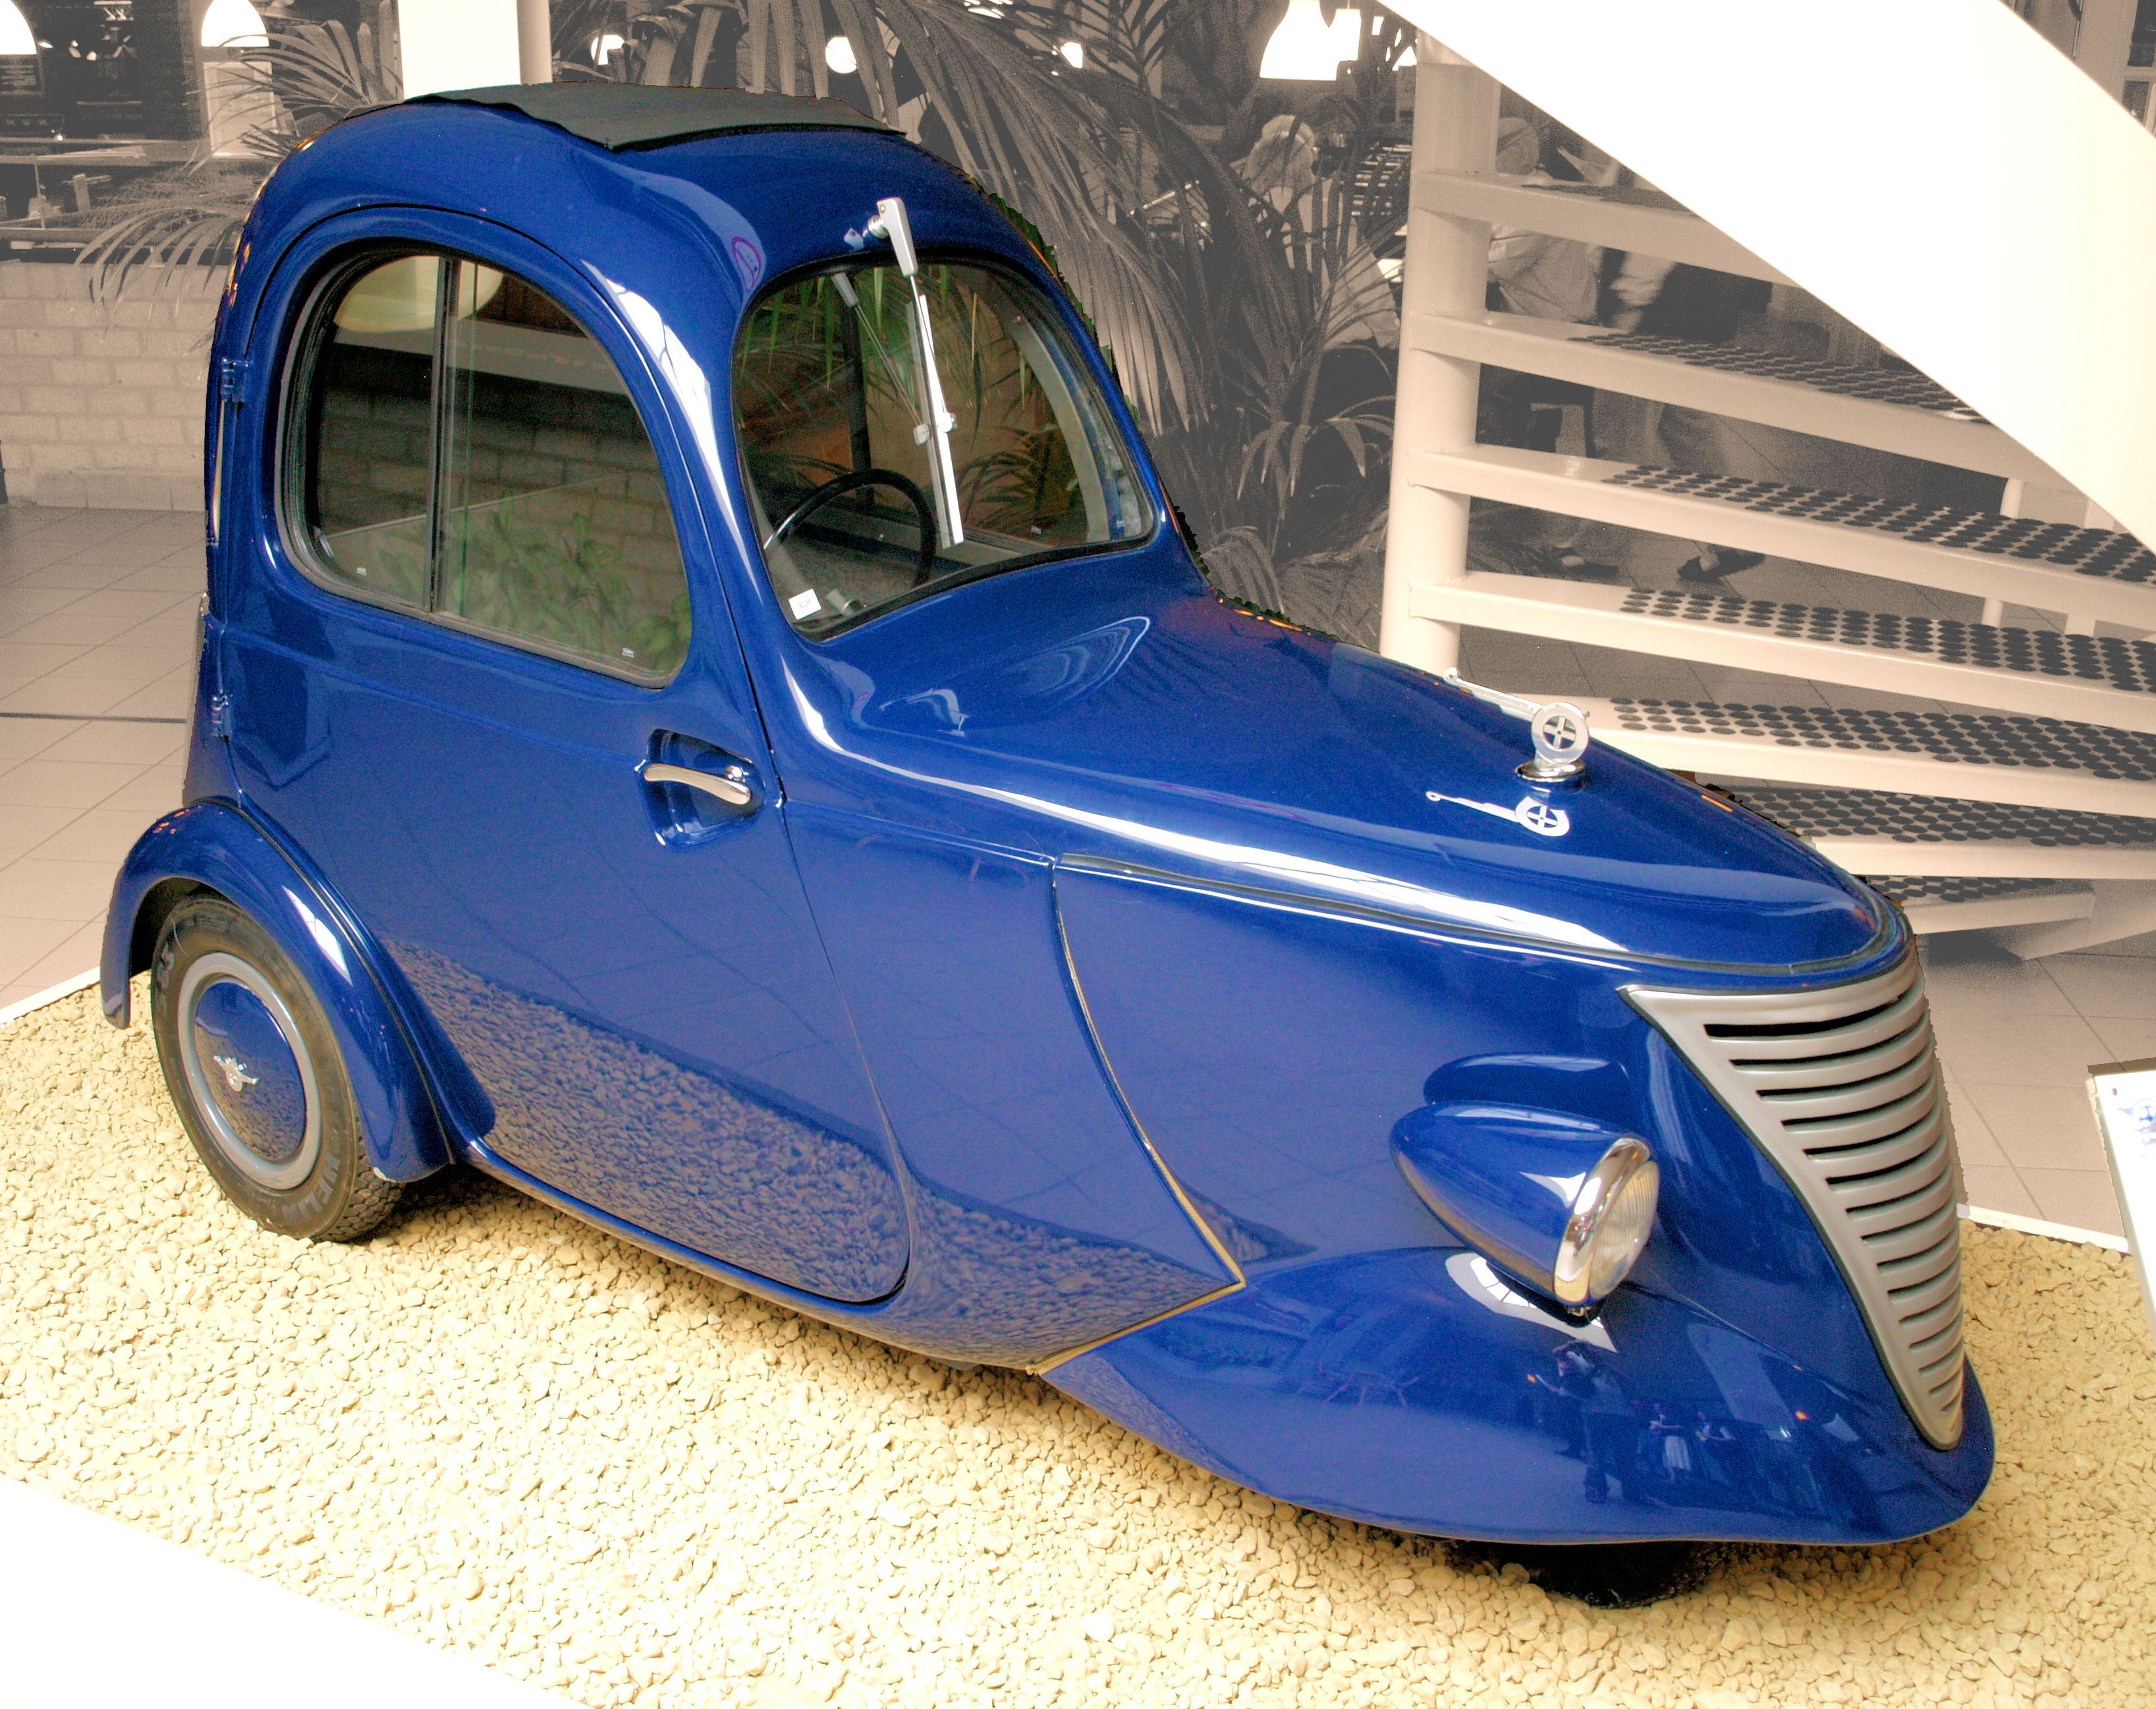 1941 DAF, one person city car nicknamed 'The Raincoat